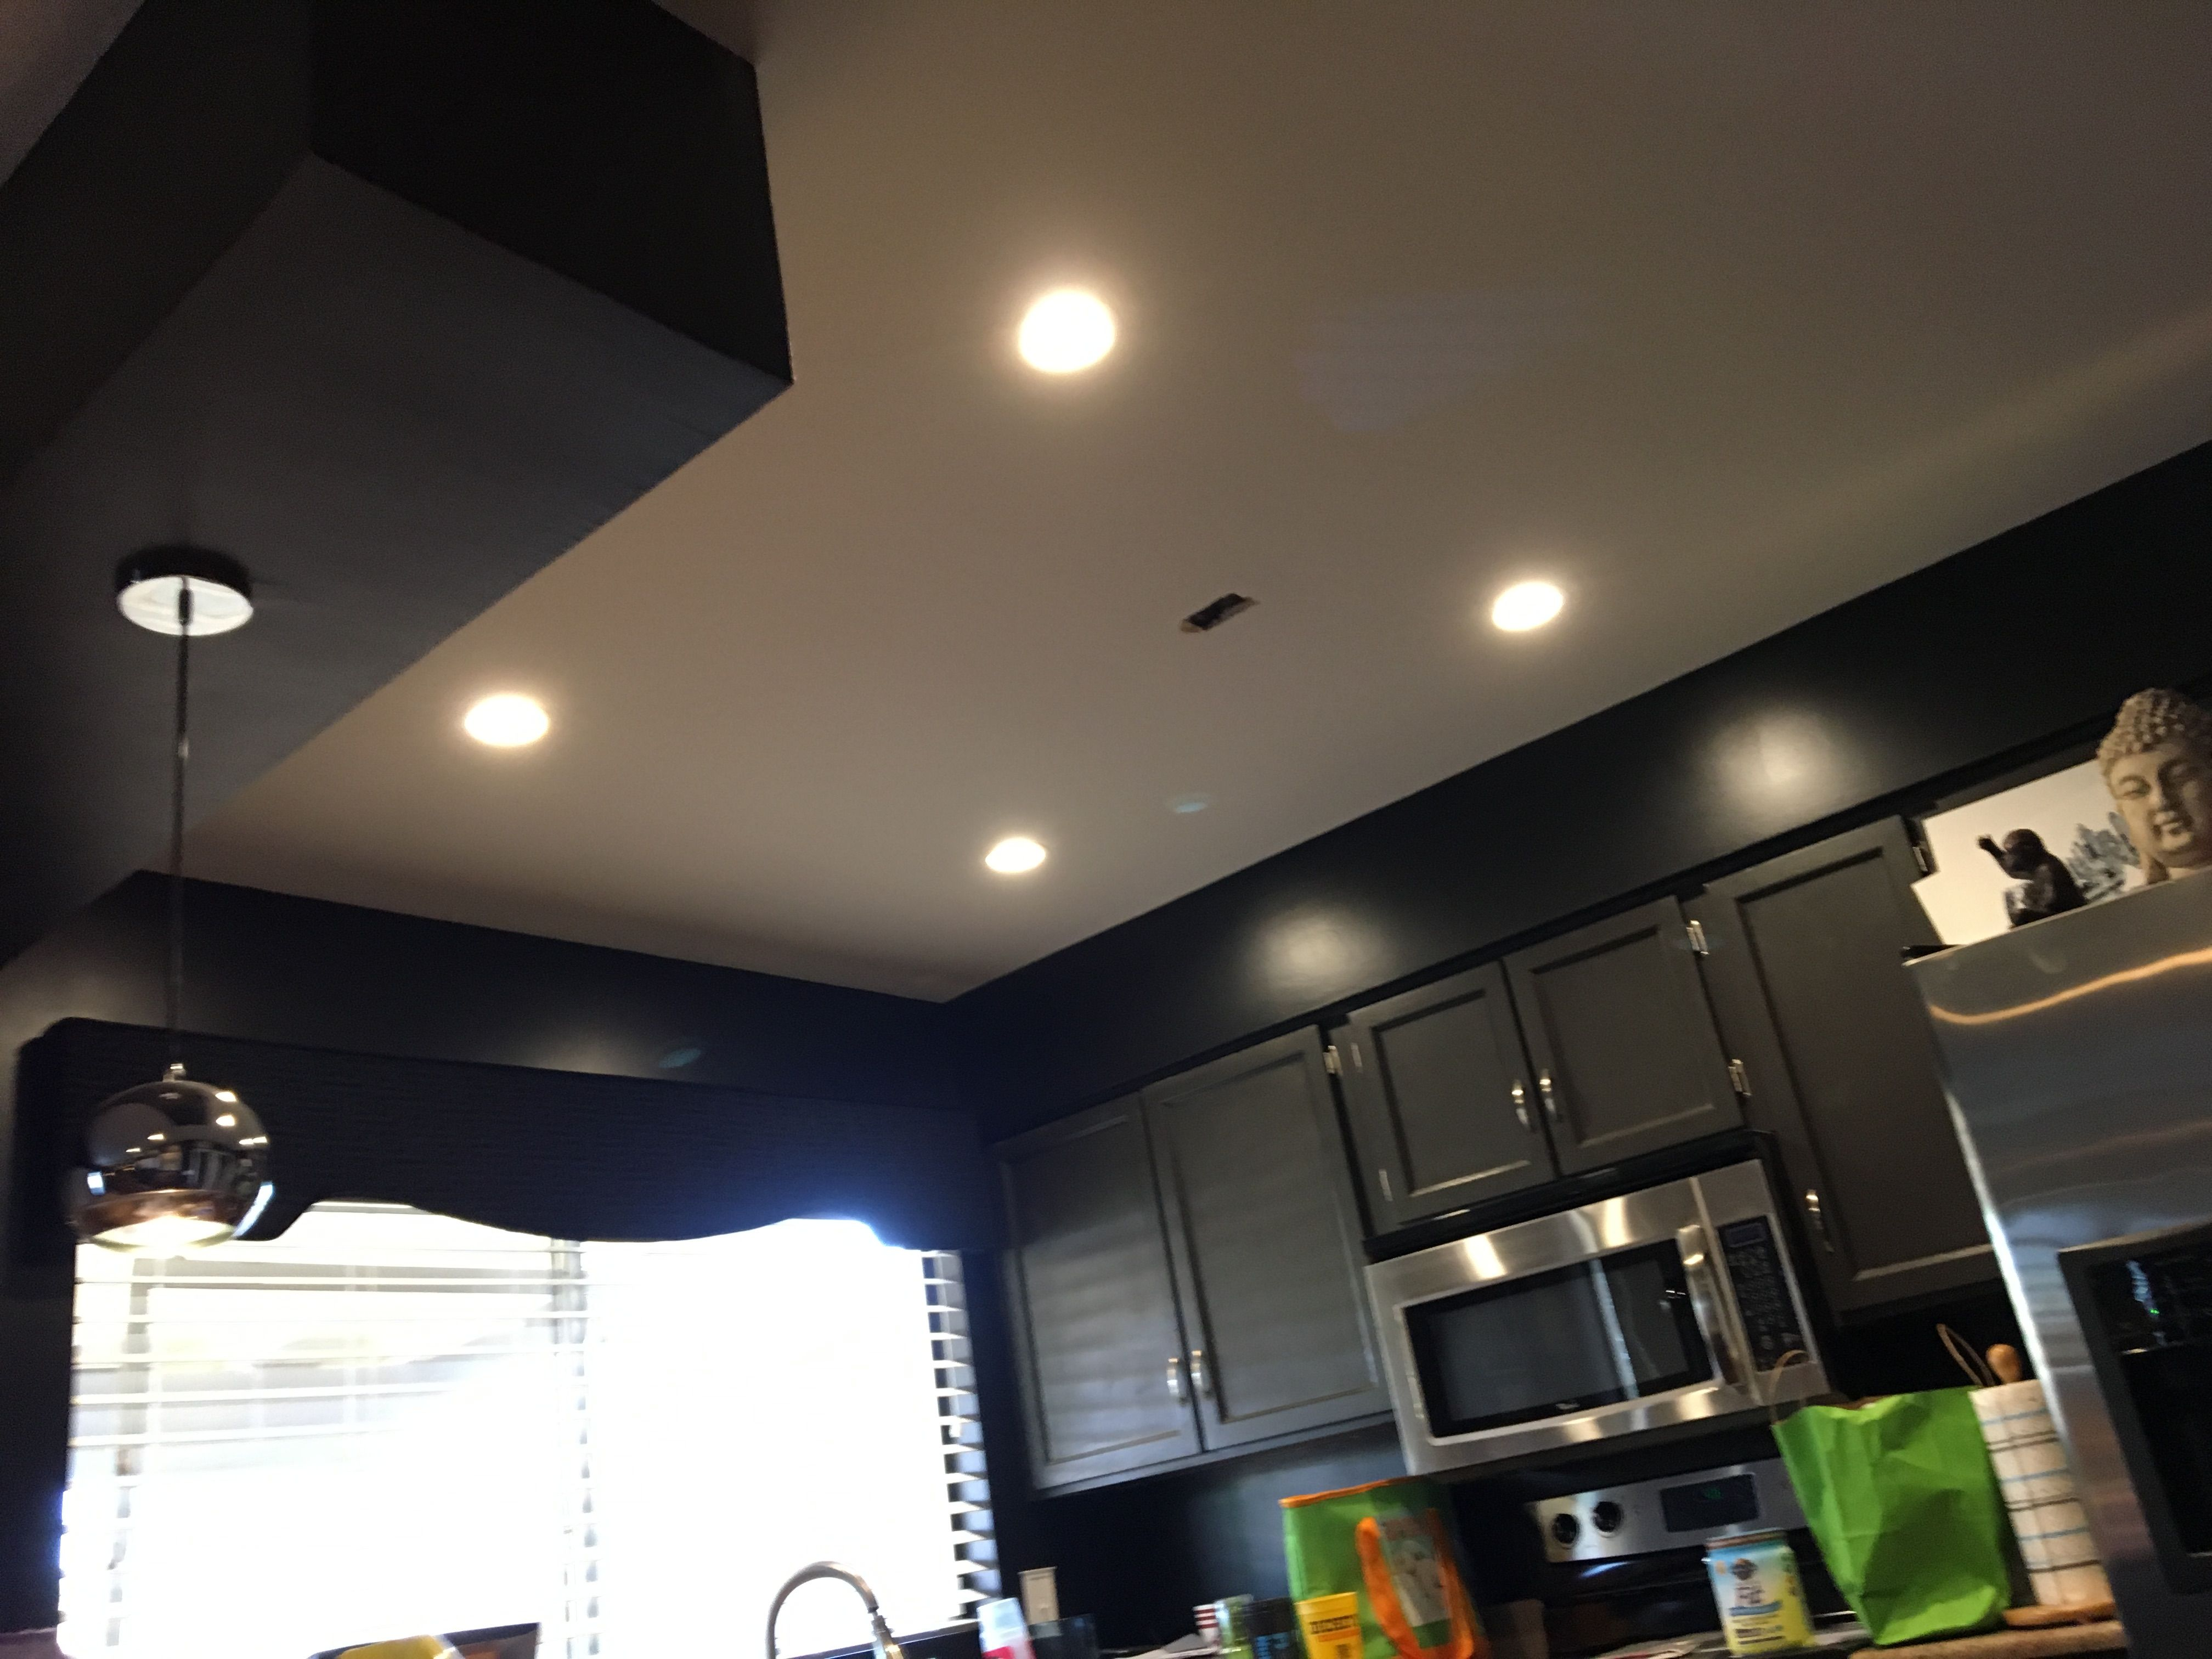 Installed 4x 4 Inch 3000k Led S In A Customers Kitchen Led Can Lights Recessed Lighting Can Lights